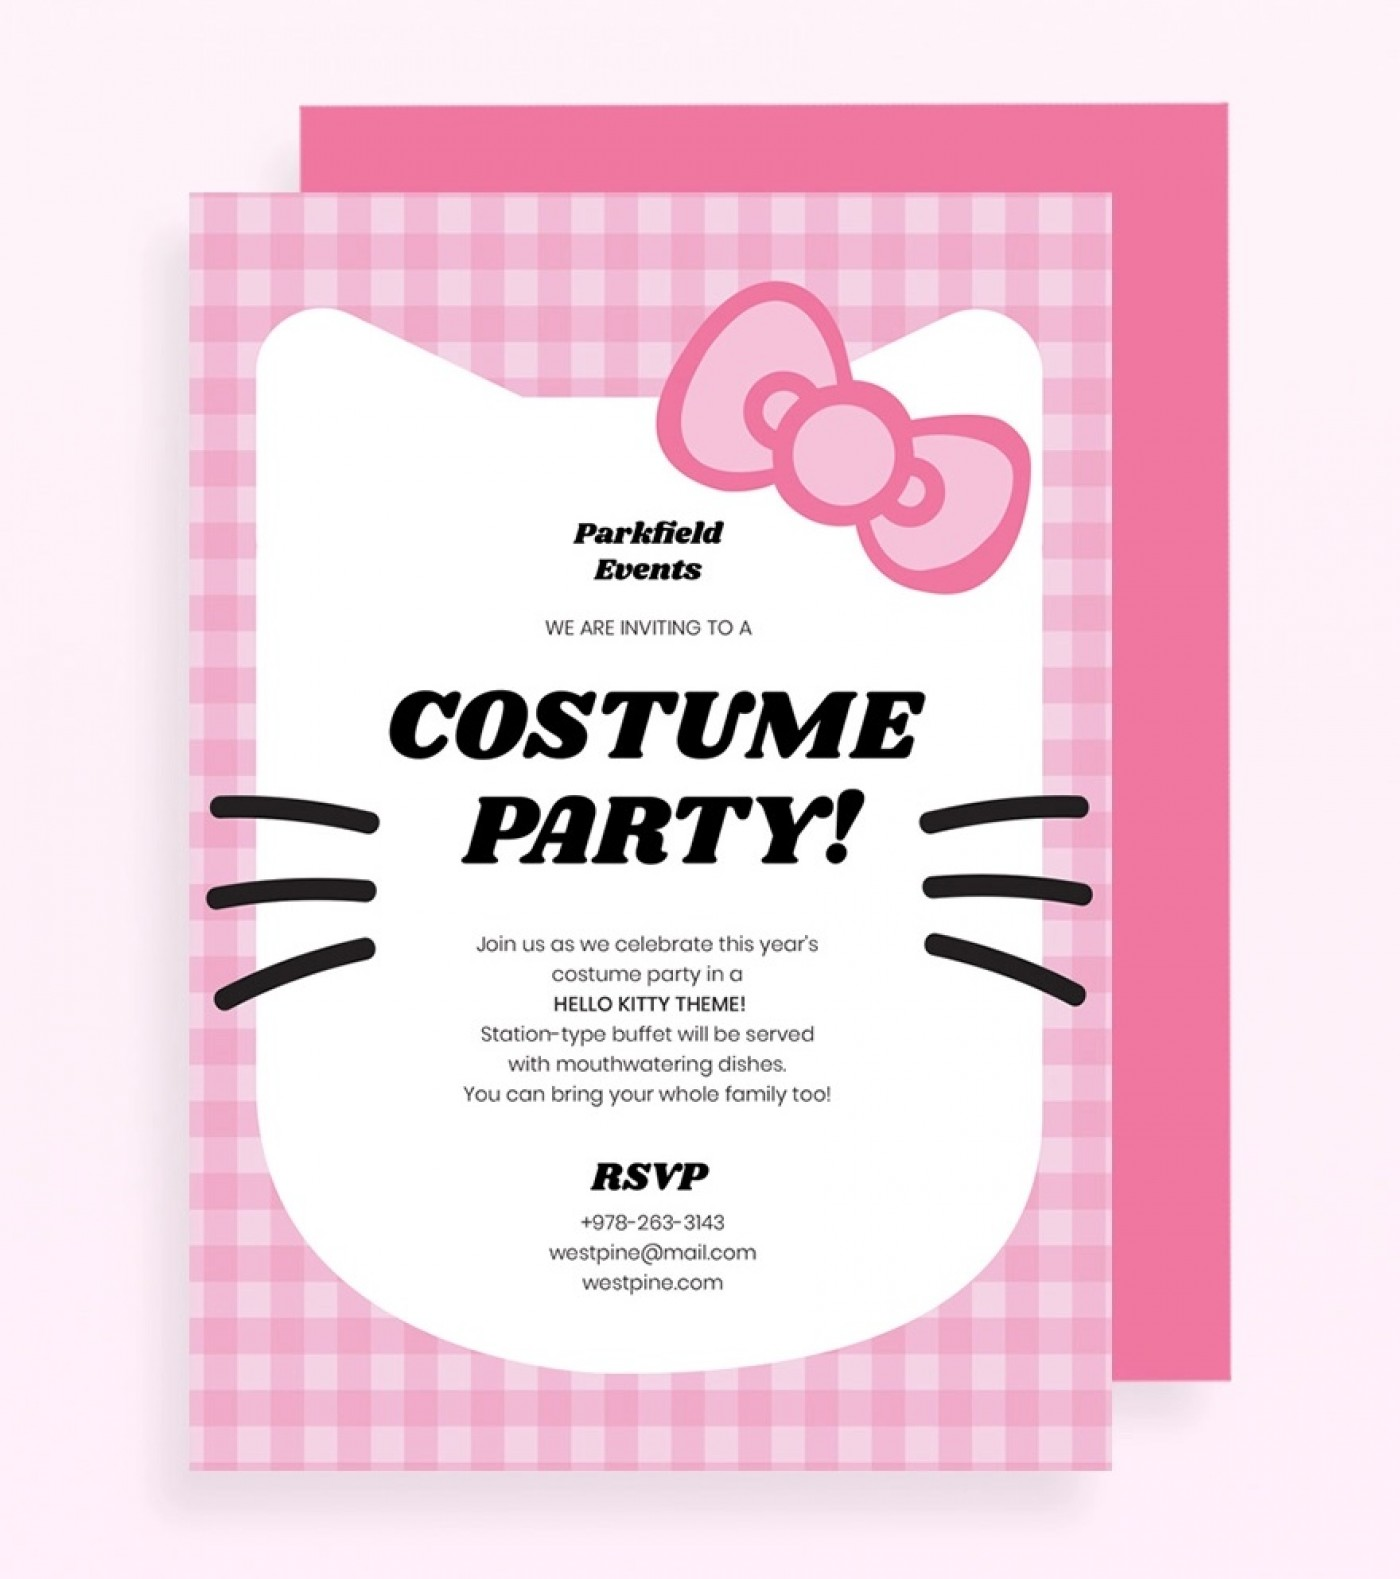 Hello Kitty Party Invitation Template Pink Jpg  Birthday Invite Editable1400